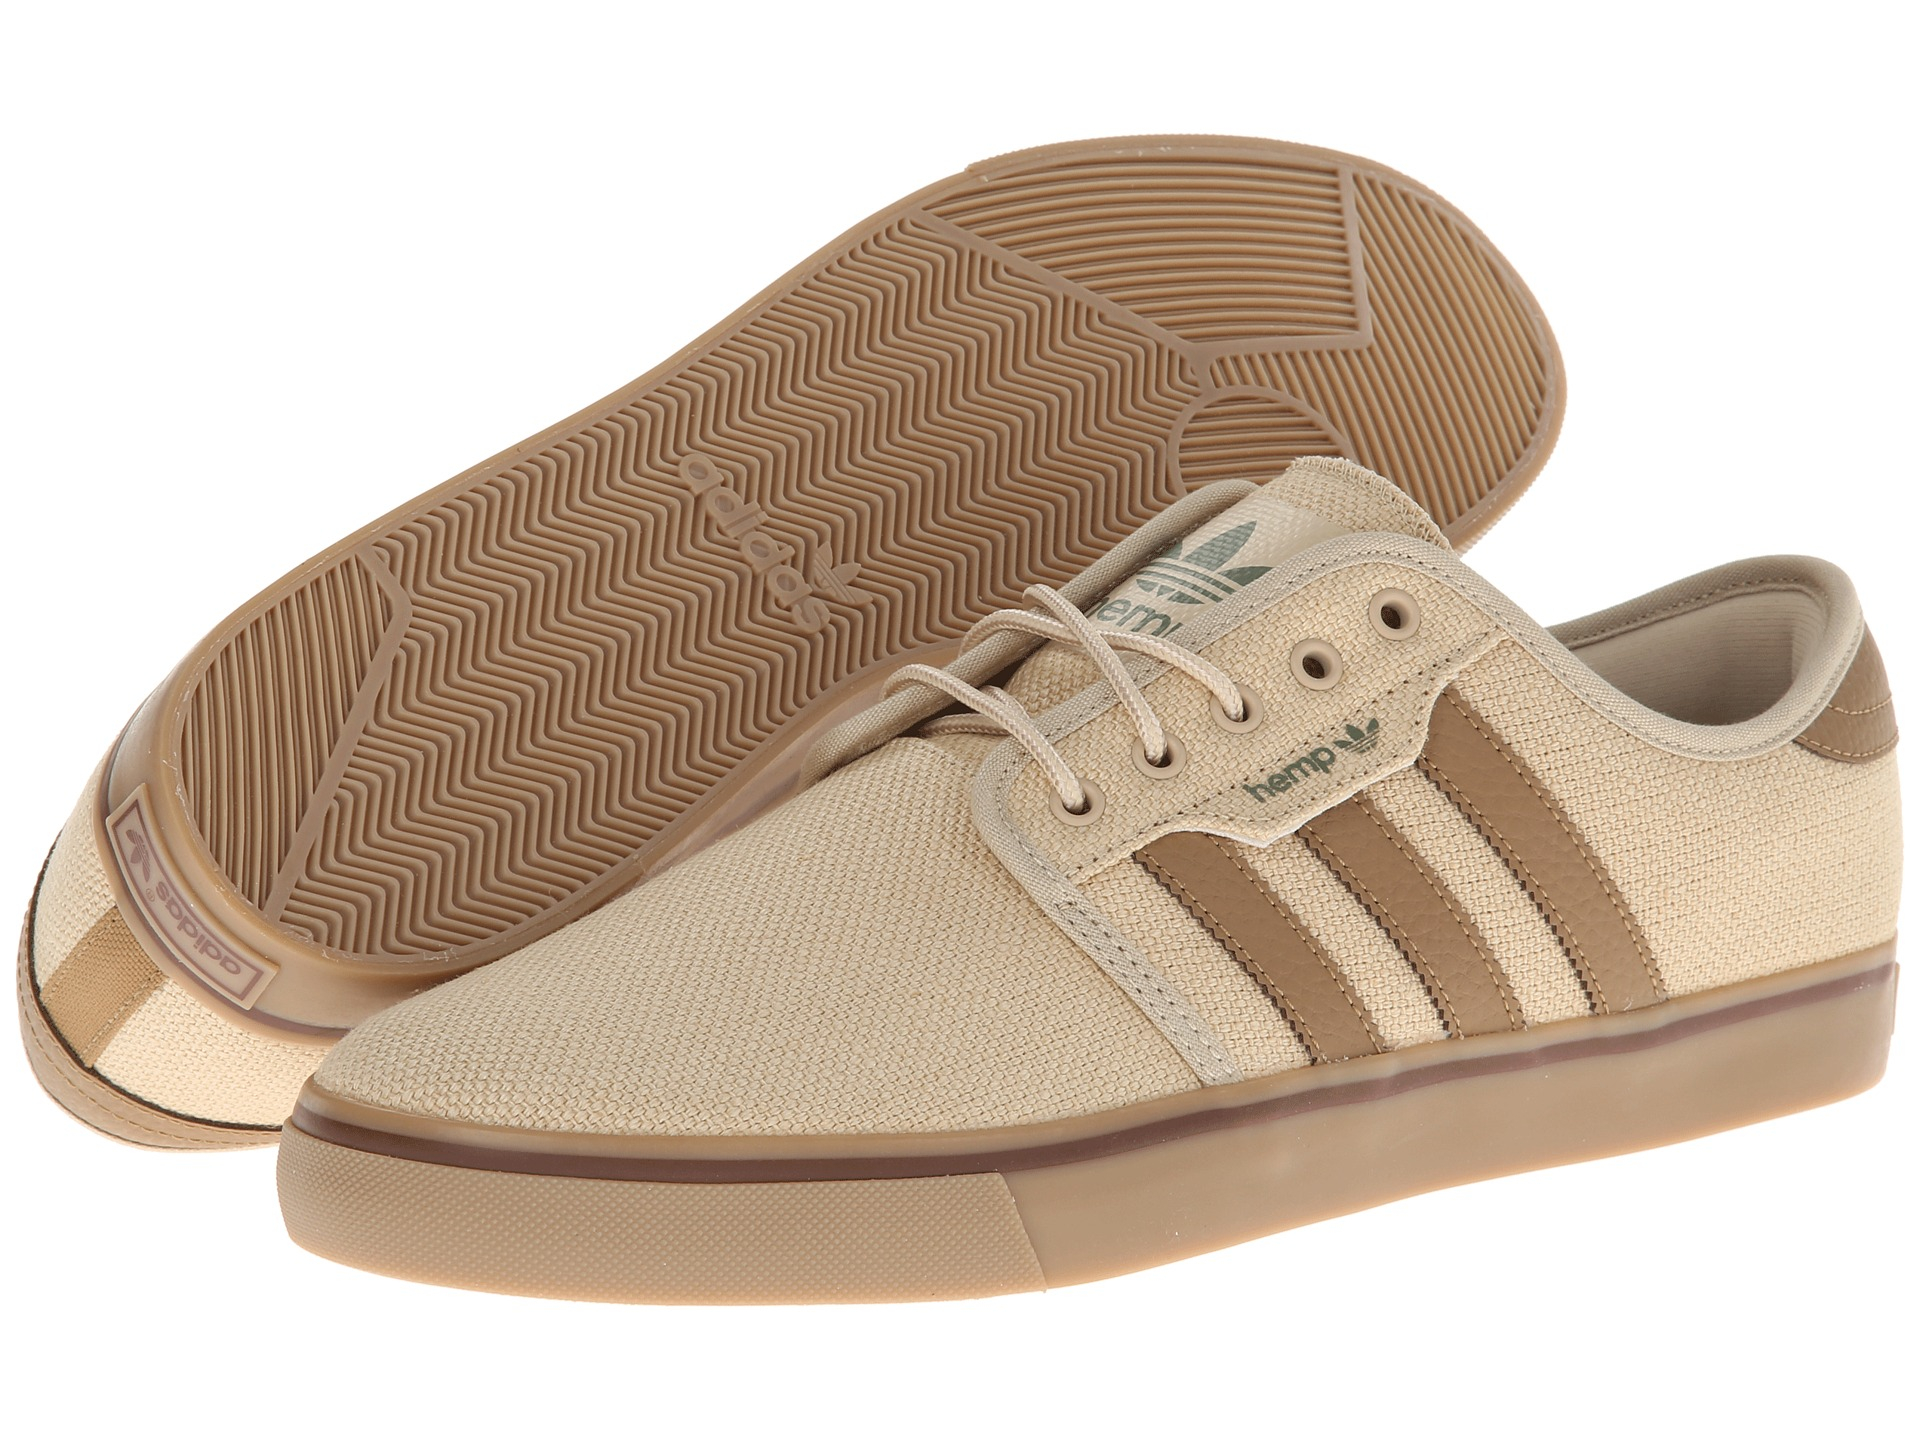 Adidas Hemp Shoes Green